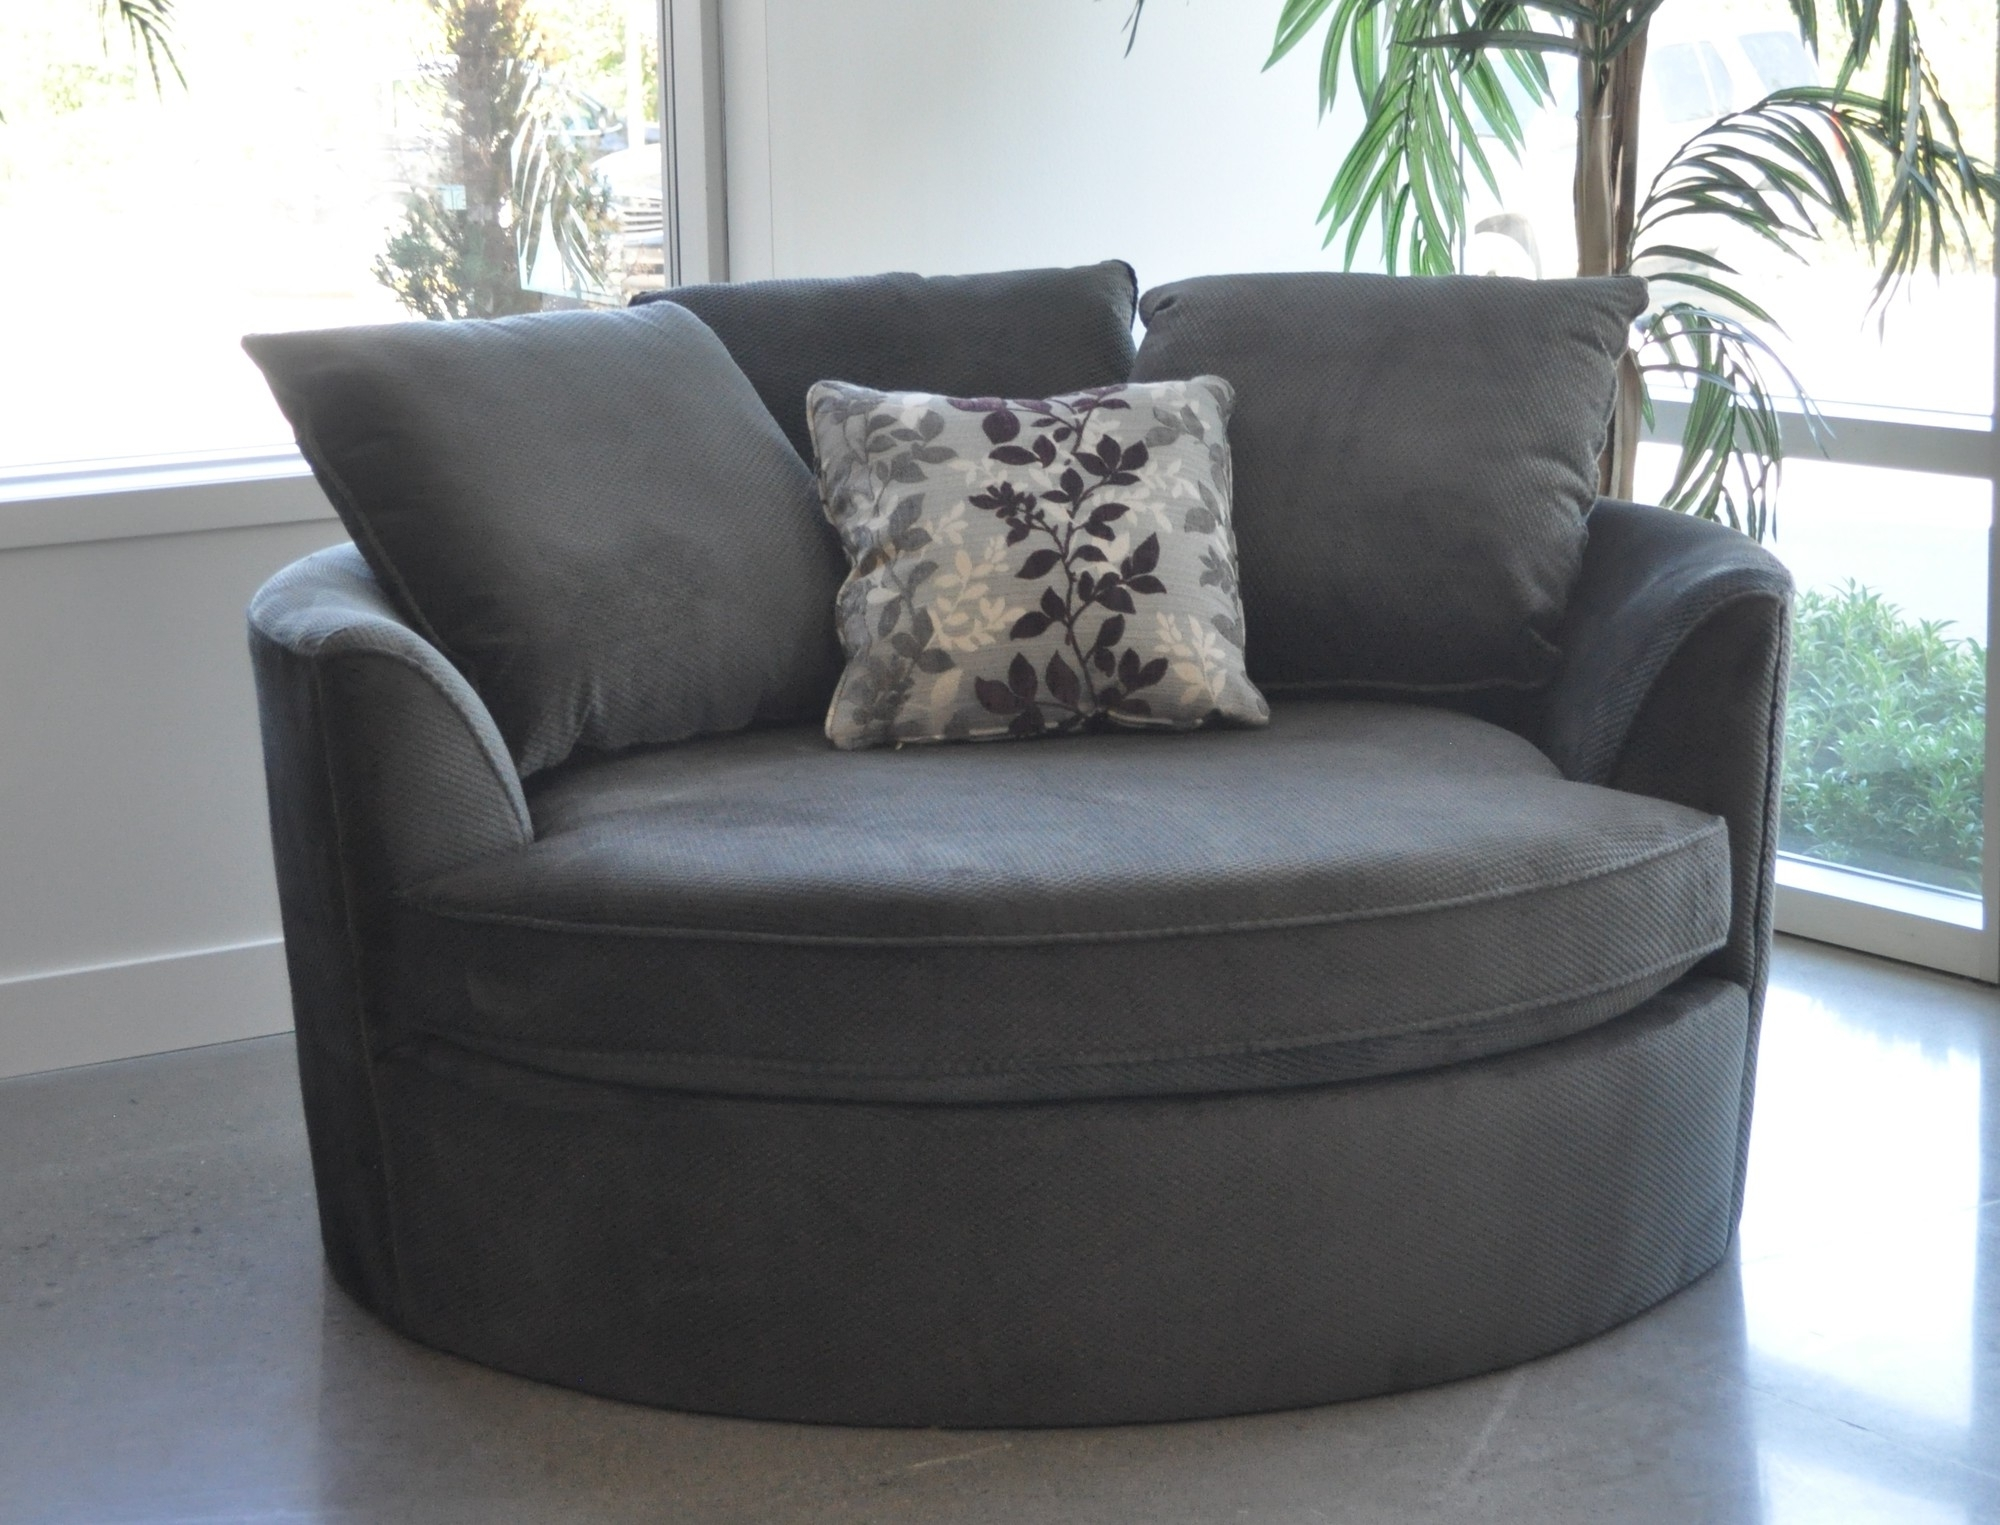 Explore Photos Of Round Sofas Showing